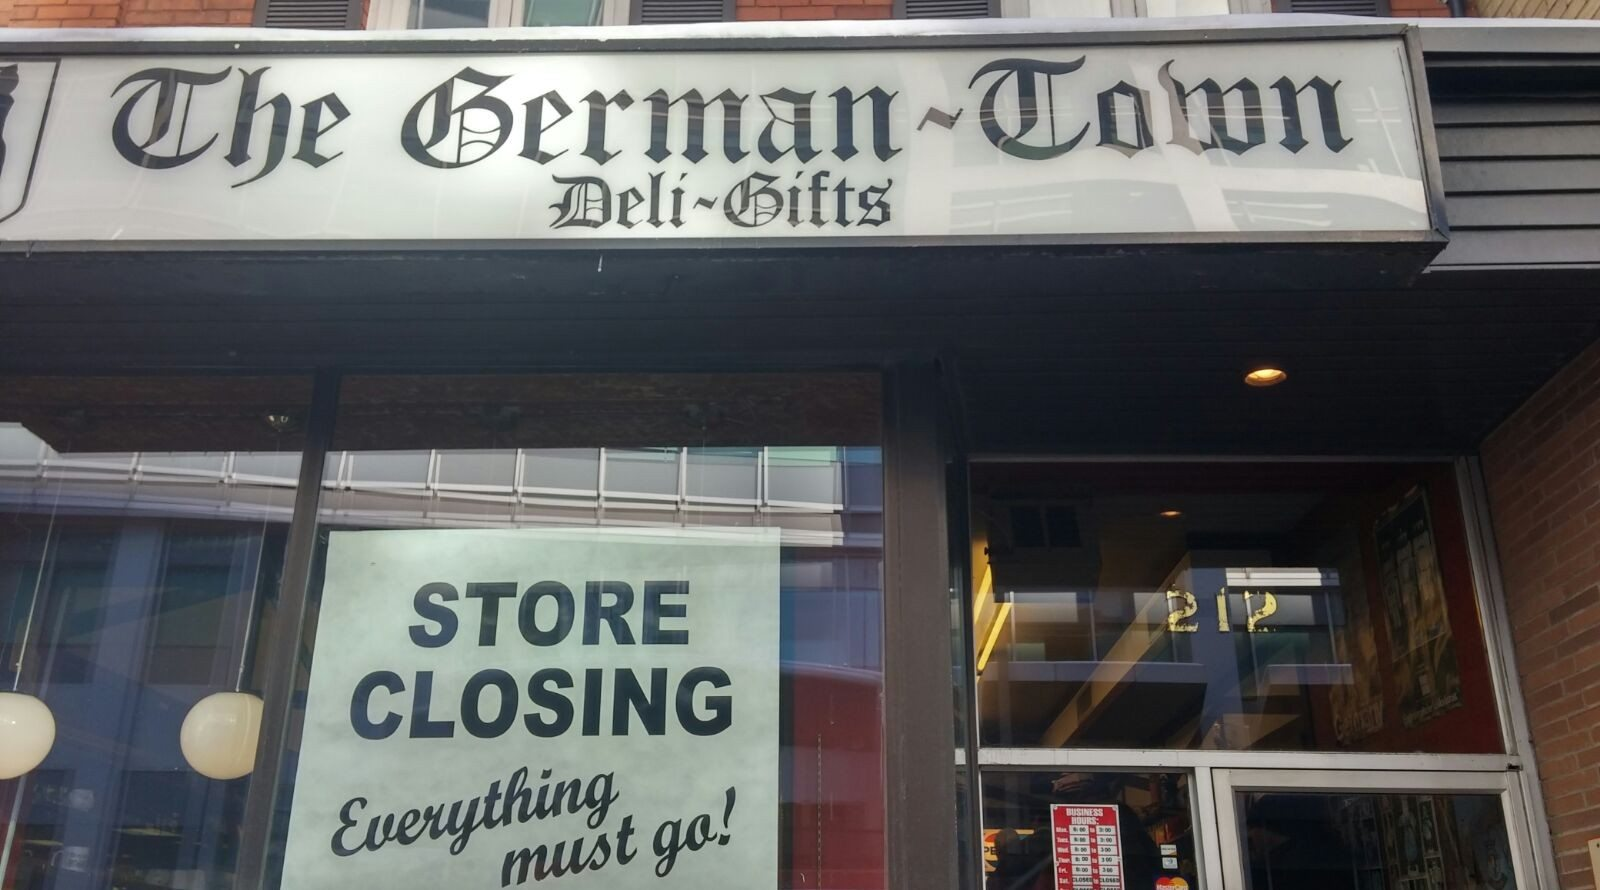 Popular German Town Deli to close after 30 years in Ottawa